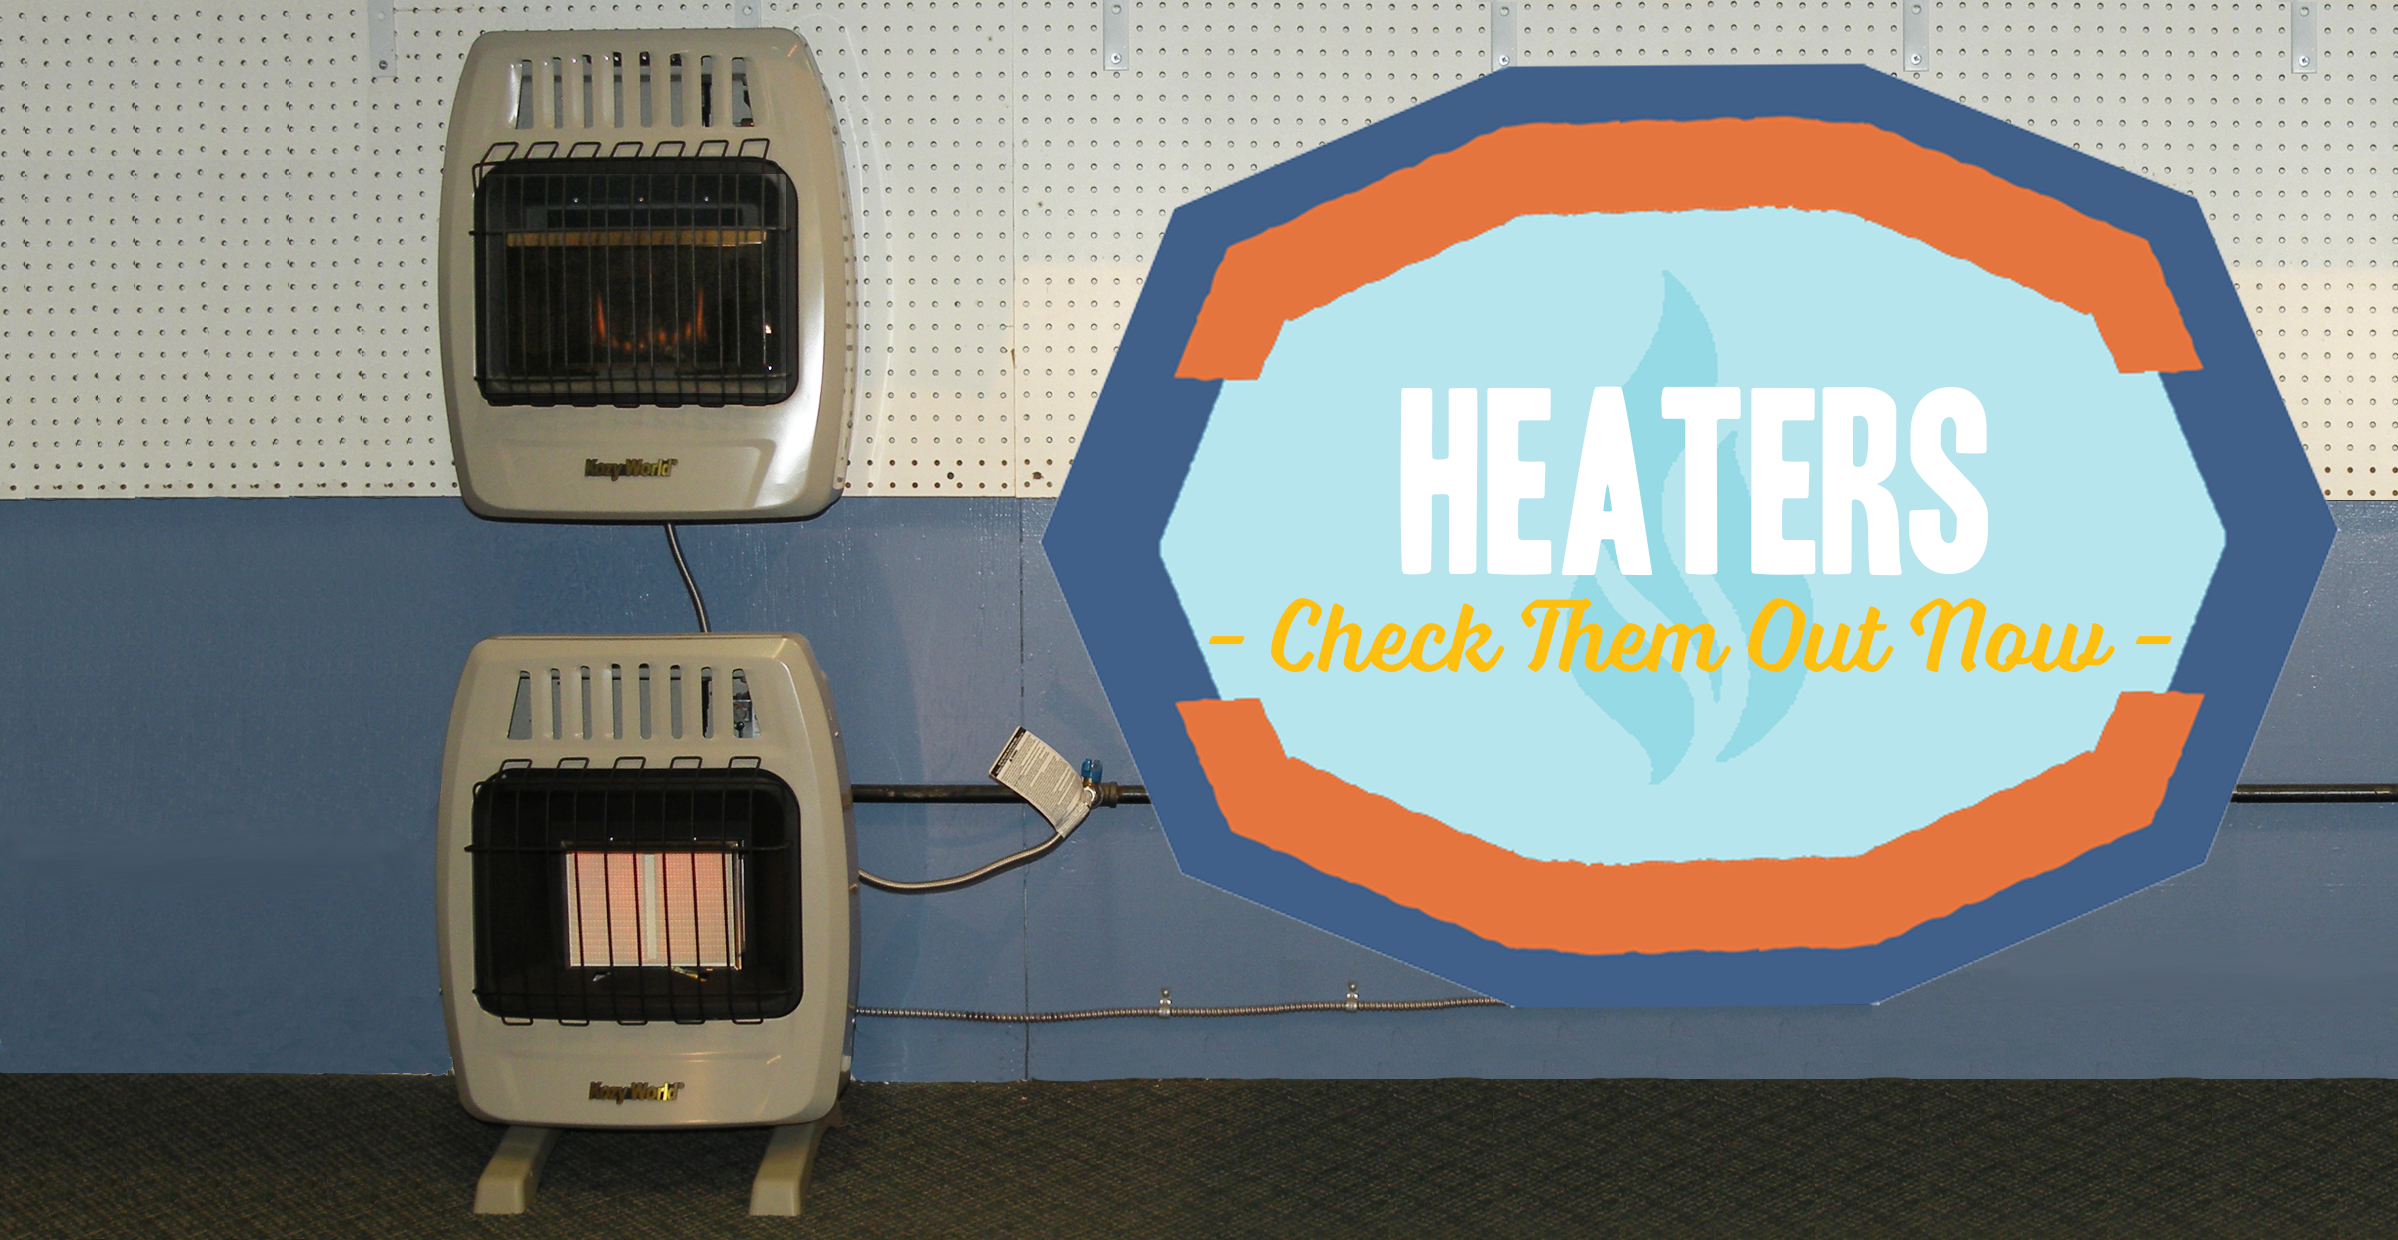 heaters banner.png